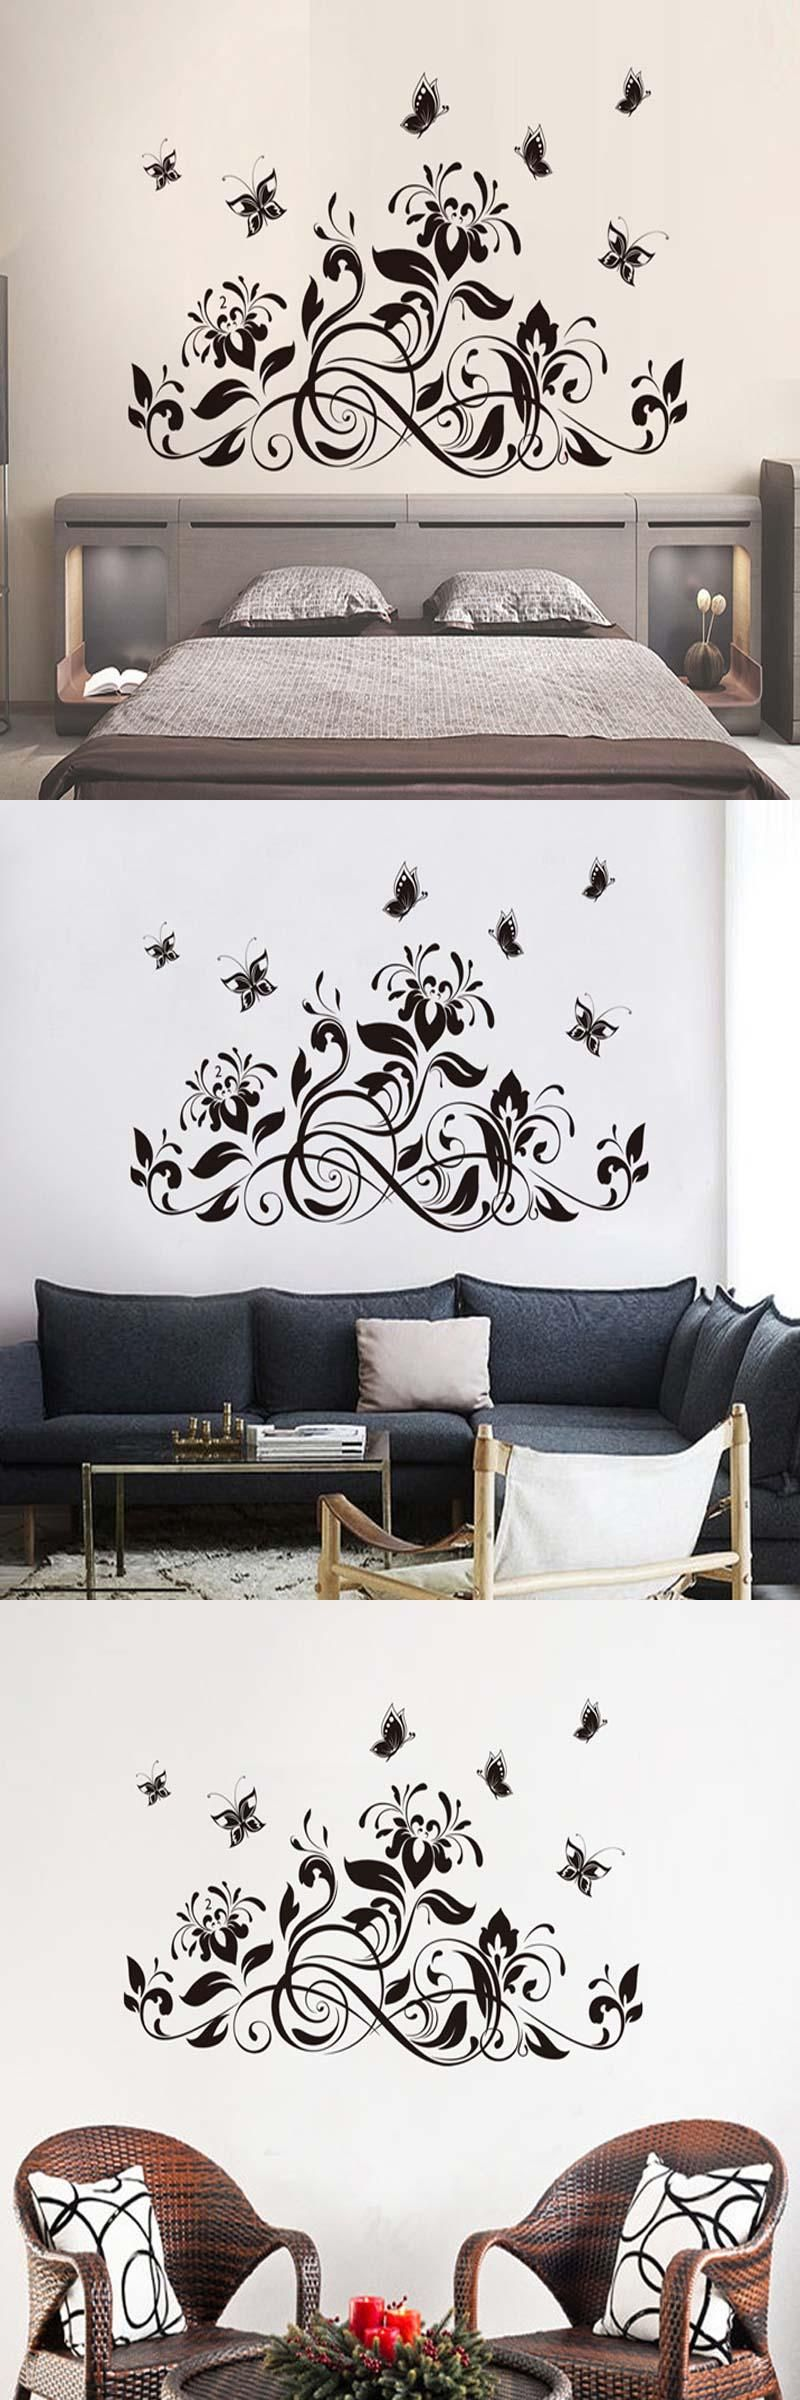 Bedroom interior setting visit to buy black cane adornment butterfly on the wall sitting